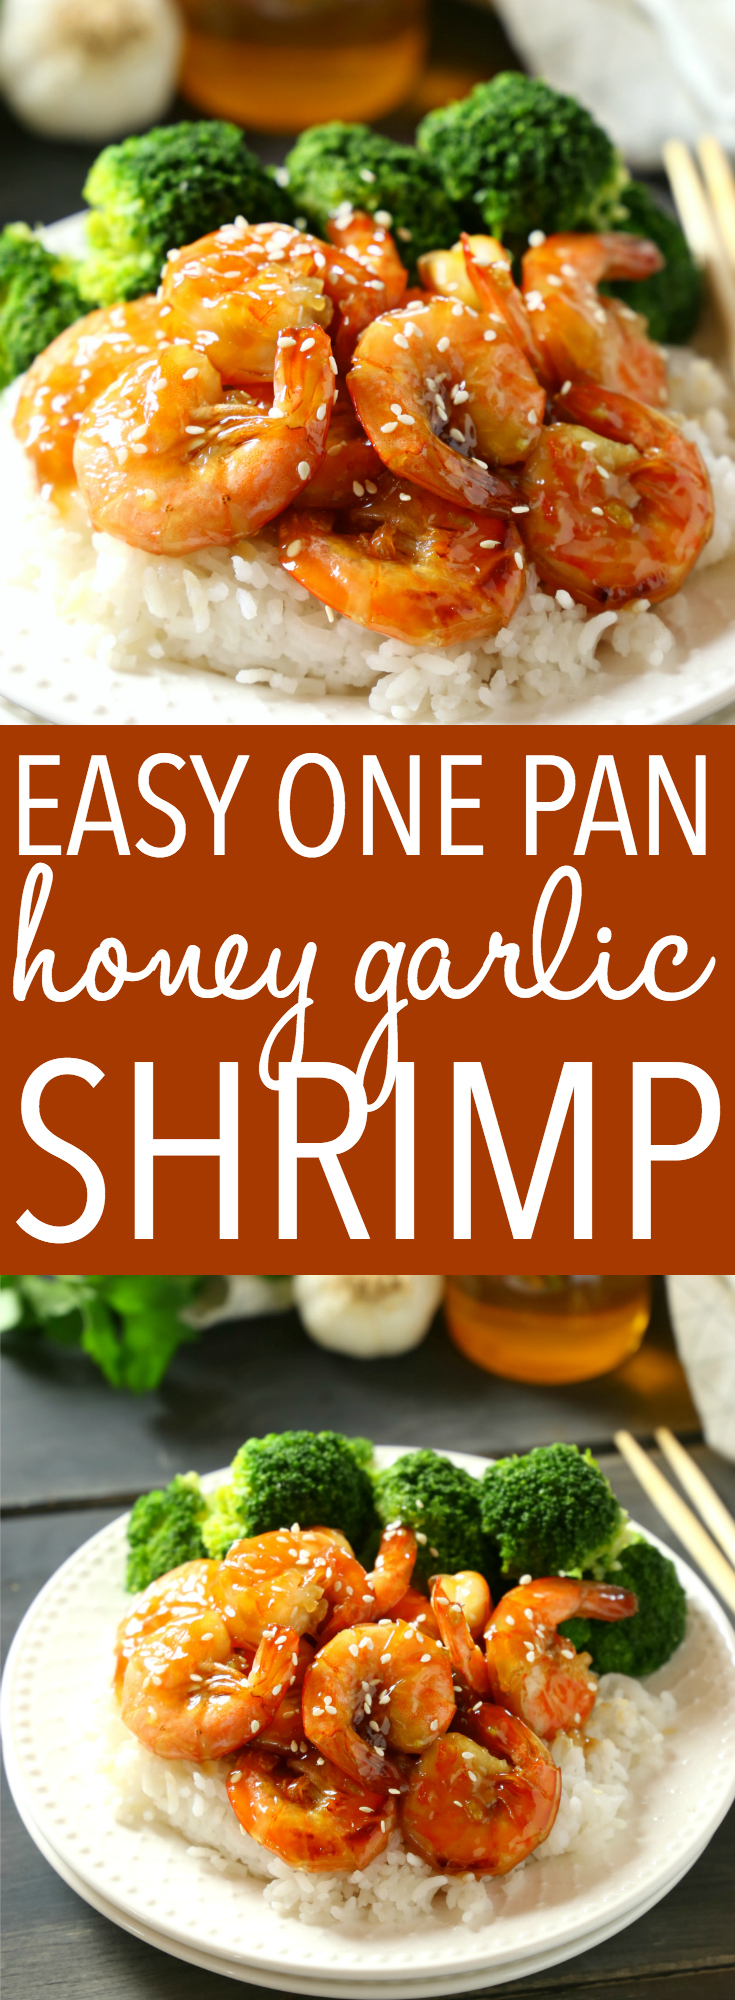 This Easy One Pan Honey Garlic Shrimp is a delicious Asian-inspired meal idea with the perfect honey garlic sauce. And it's made with simple ingredients in 15 minutes or less! Recipe from thebusybaker.ca! #easyhoneygarlicsauce #honeygarlicshrimp #15minutemeal via @busybakerblog